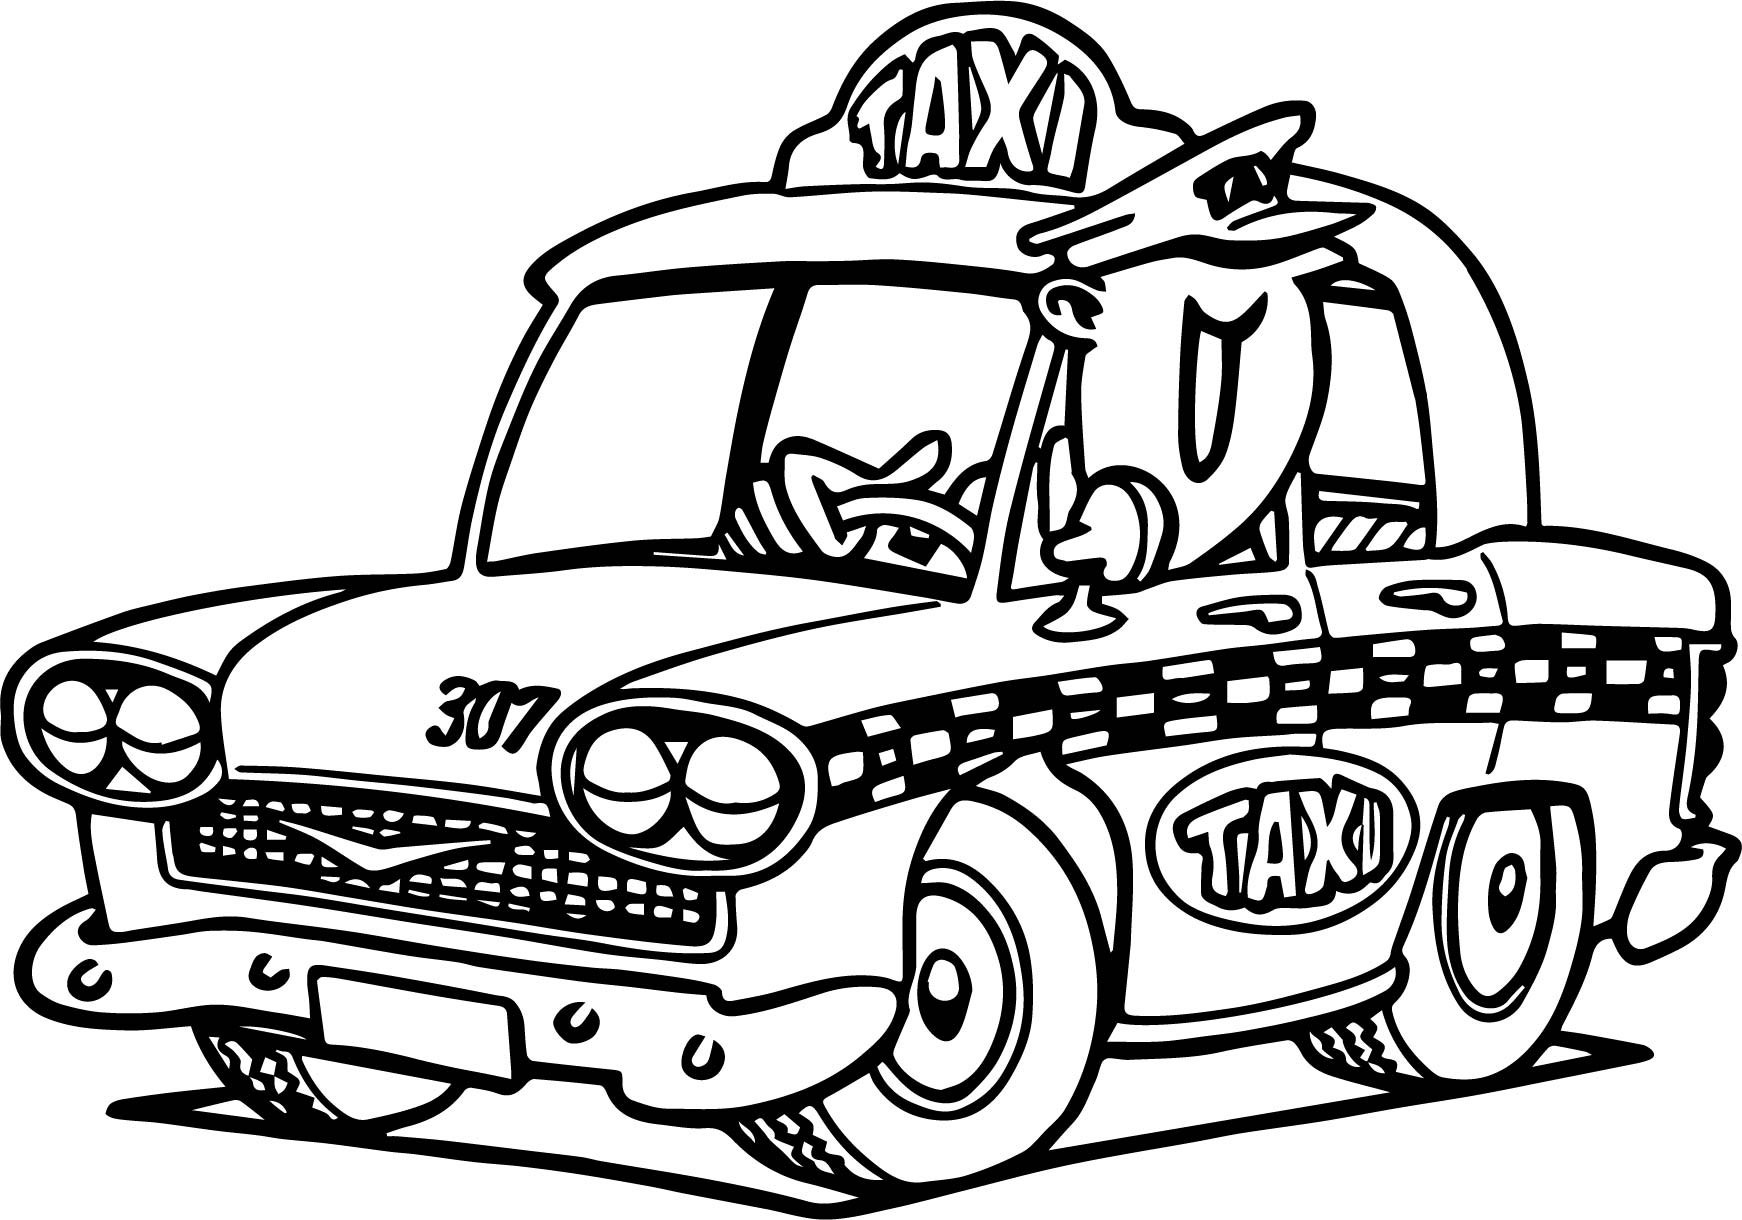 taxi colouring pages driver drawing at getdrawings free download pages taxi colouring